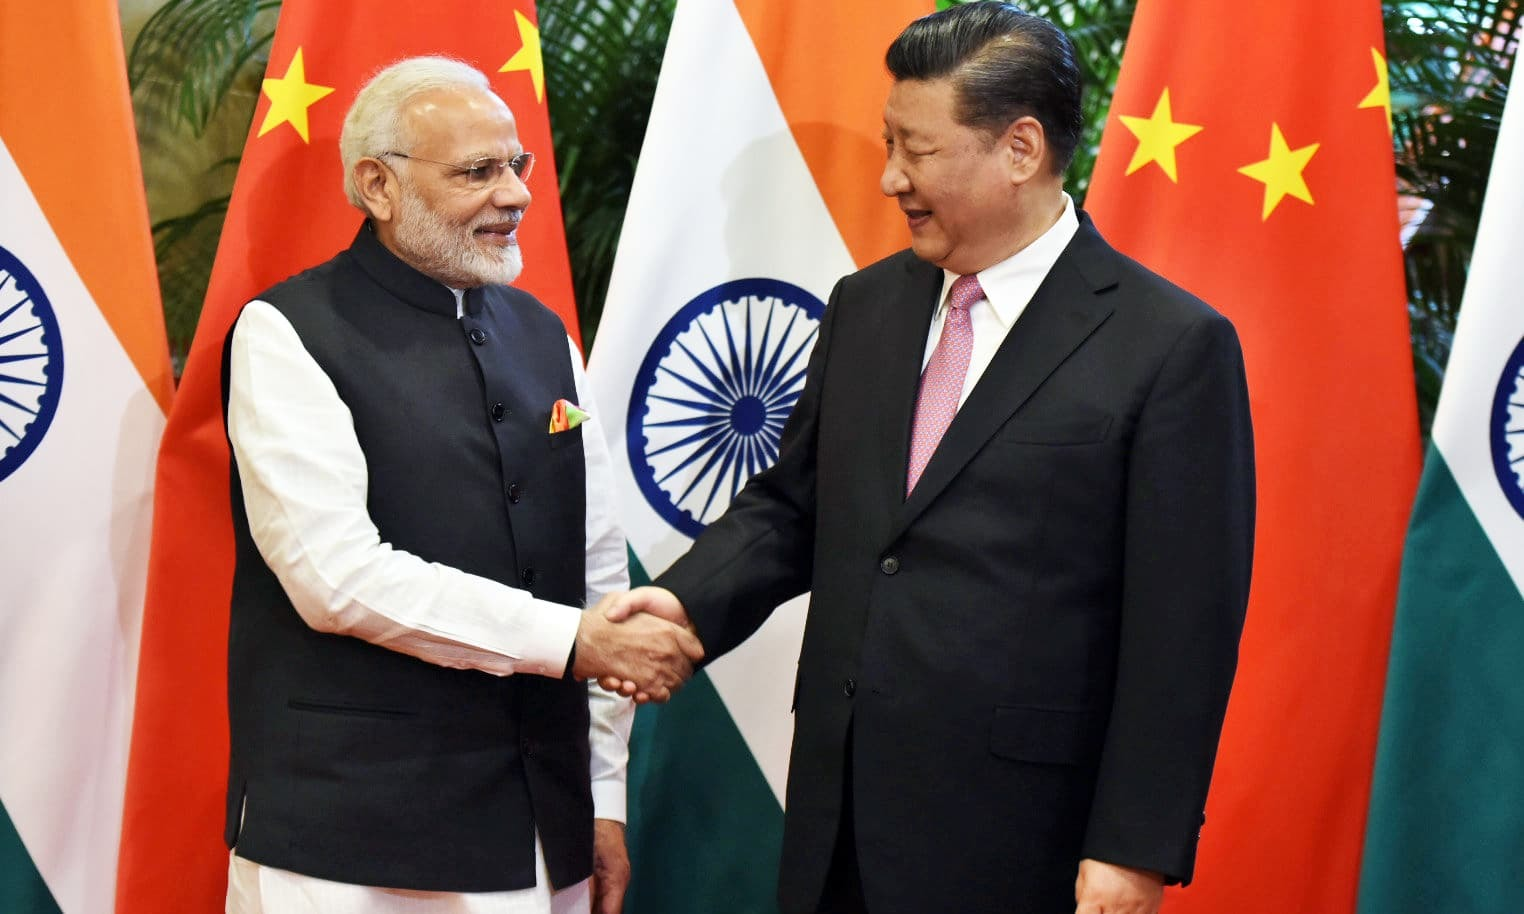 Chinese President Xi Jinping (R) shakes hands with Indian Prime Minister Narendra Modi during their visit at East Lake Guest House, in Wuhan, China, April 27, 2018. India's Press Information Bureau/Handout via REUTERS ATTENTION EDITORS - THIS PICTURE WAS PROVIDED BY A THIRD PARTY. NO RESALES. NO ARCHIVE